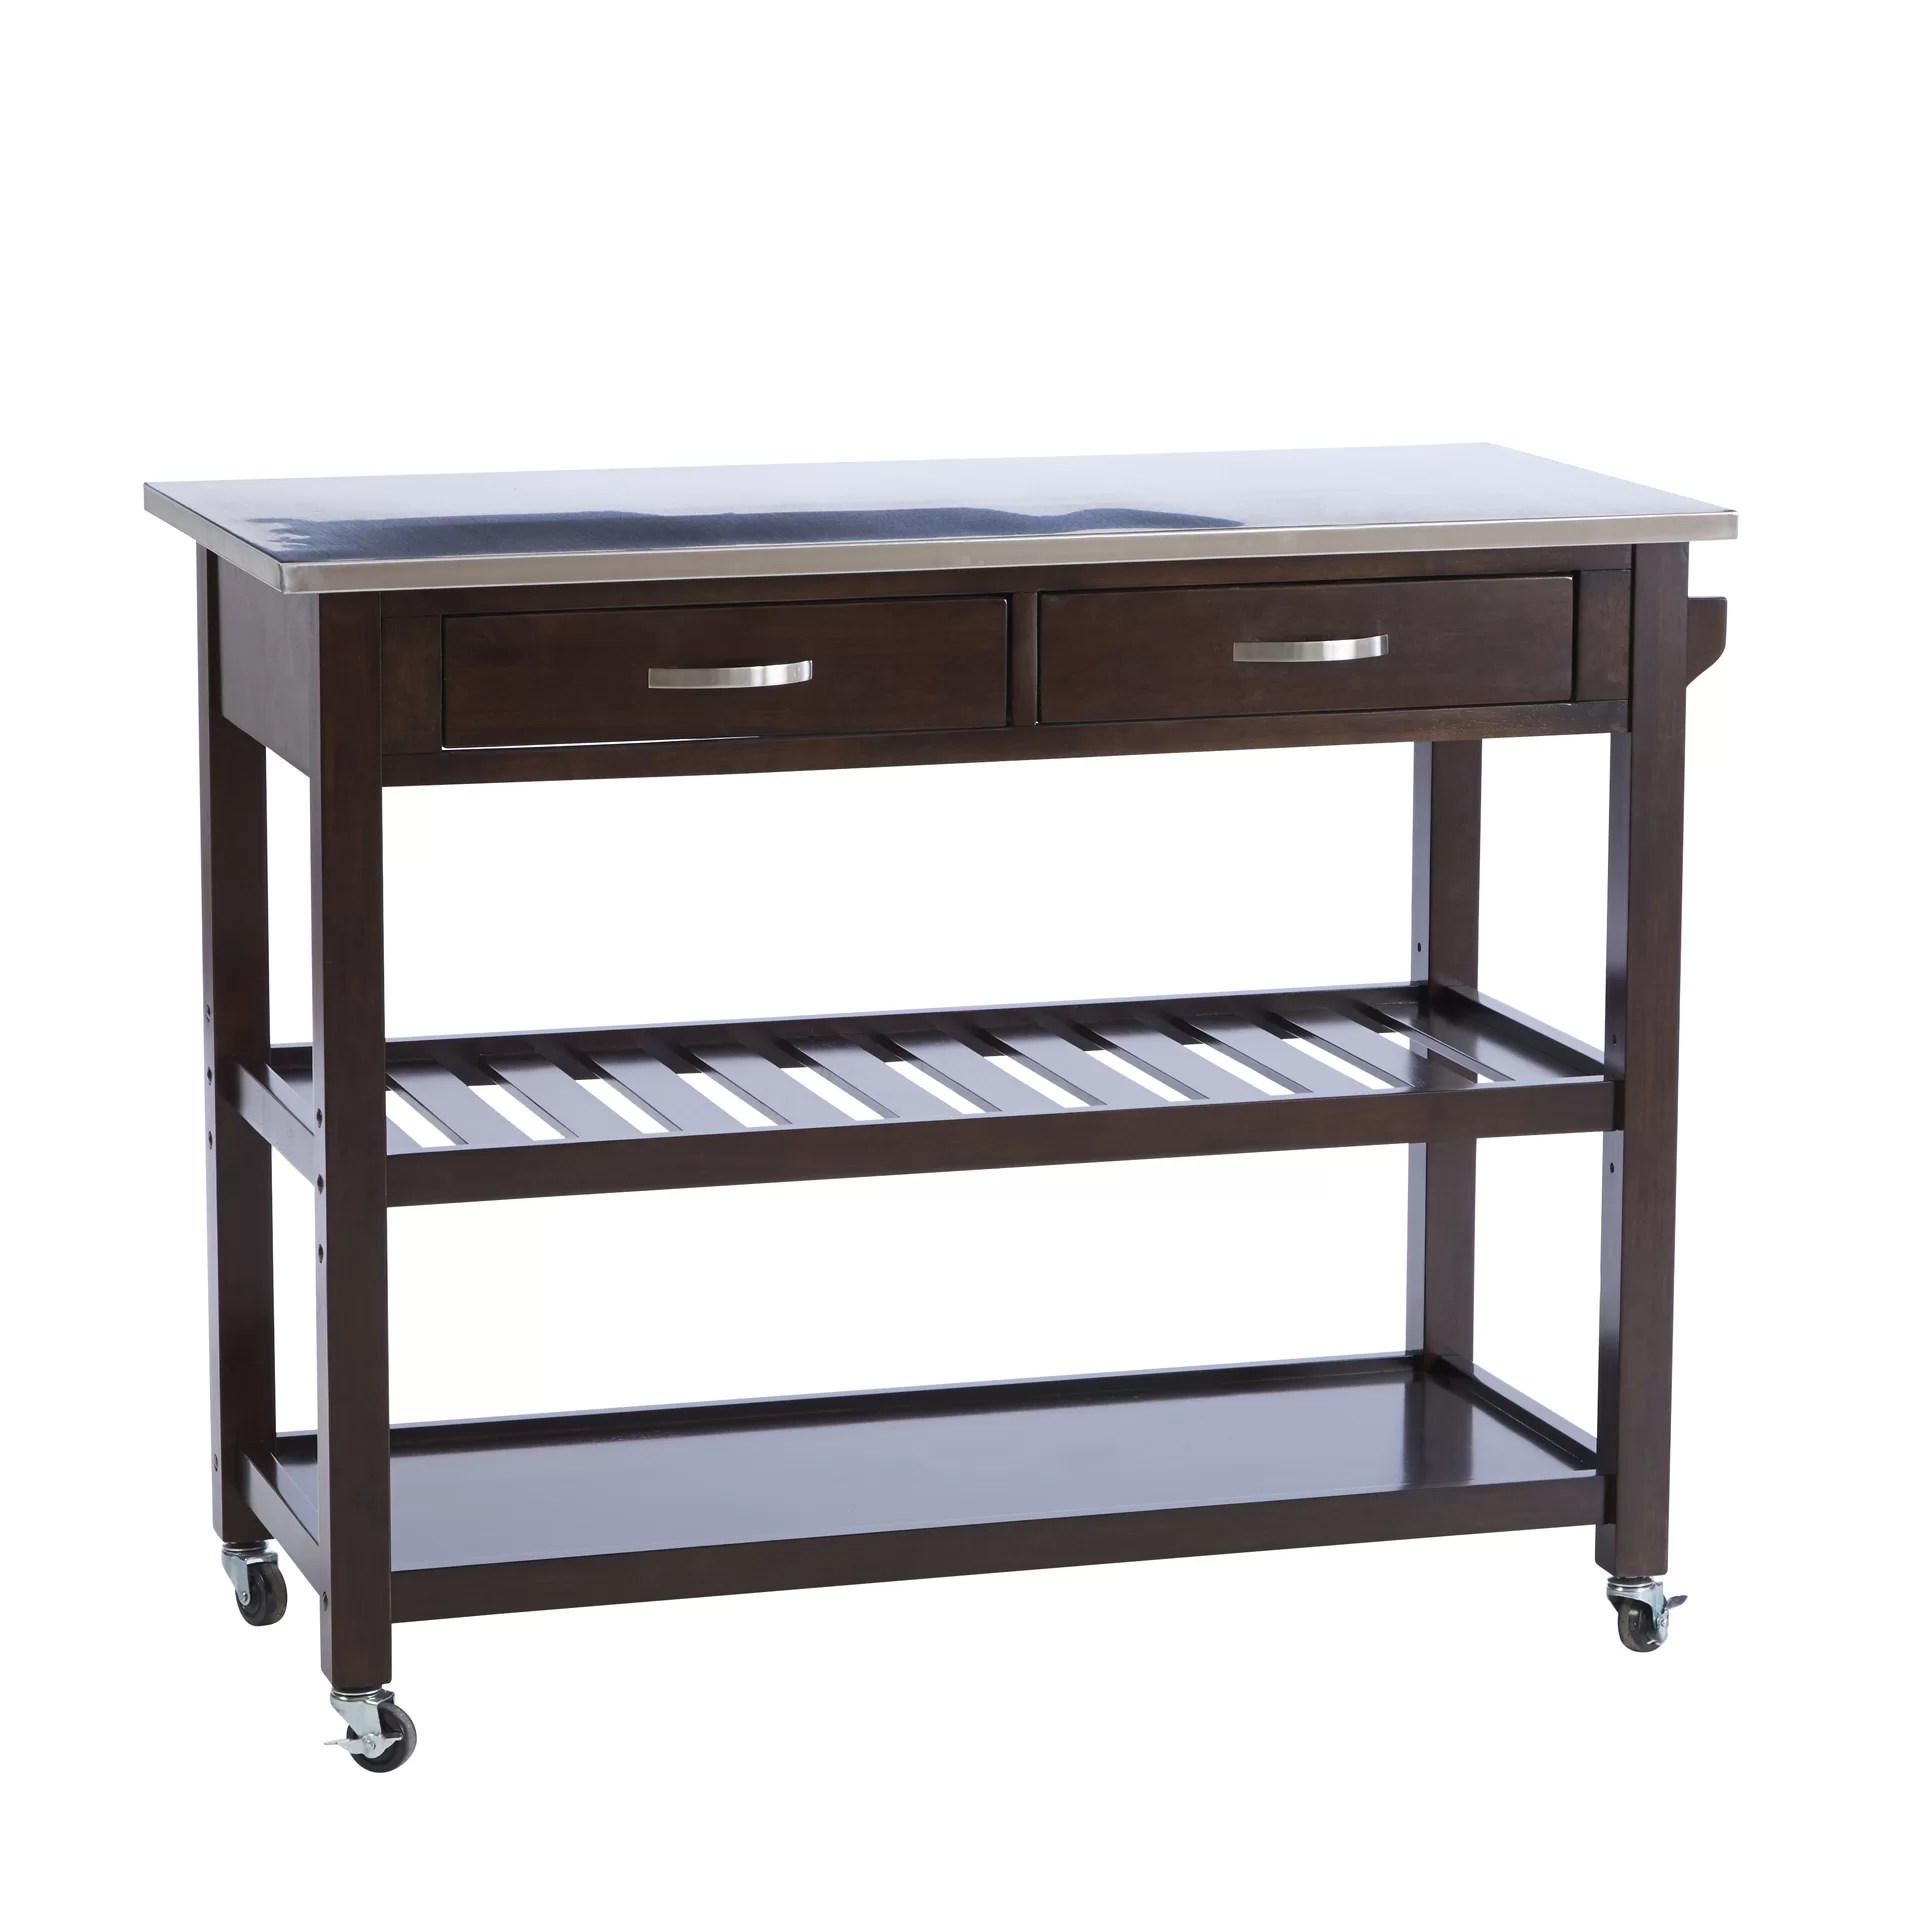 byrnedale kitchen island stainless steel top reviews wayfair furniture cambridge stainless steel top kitchen island white